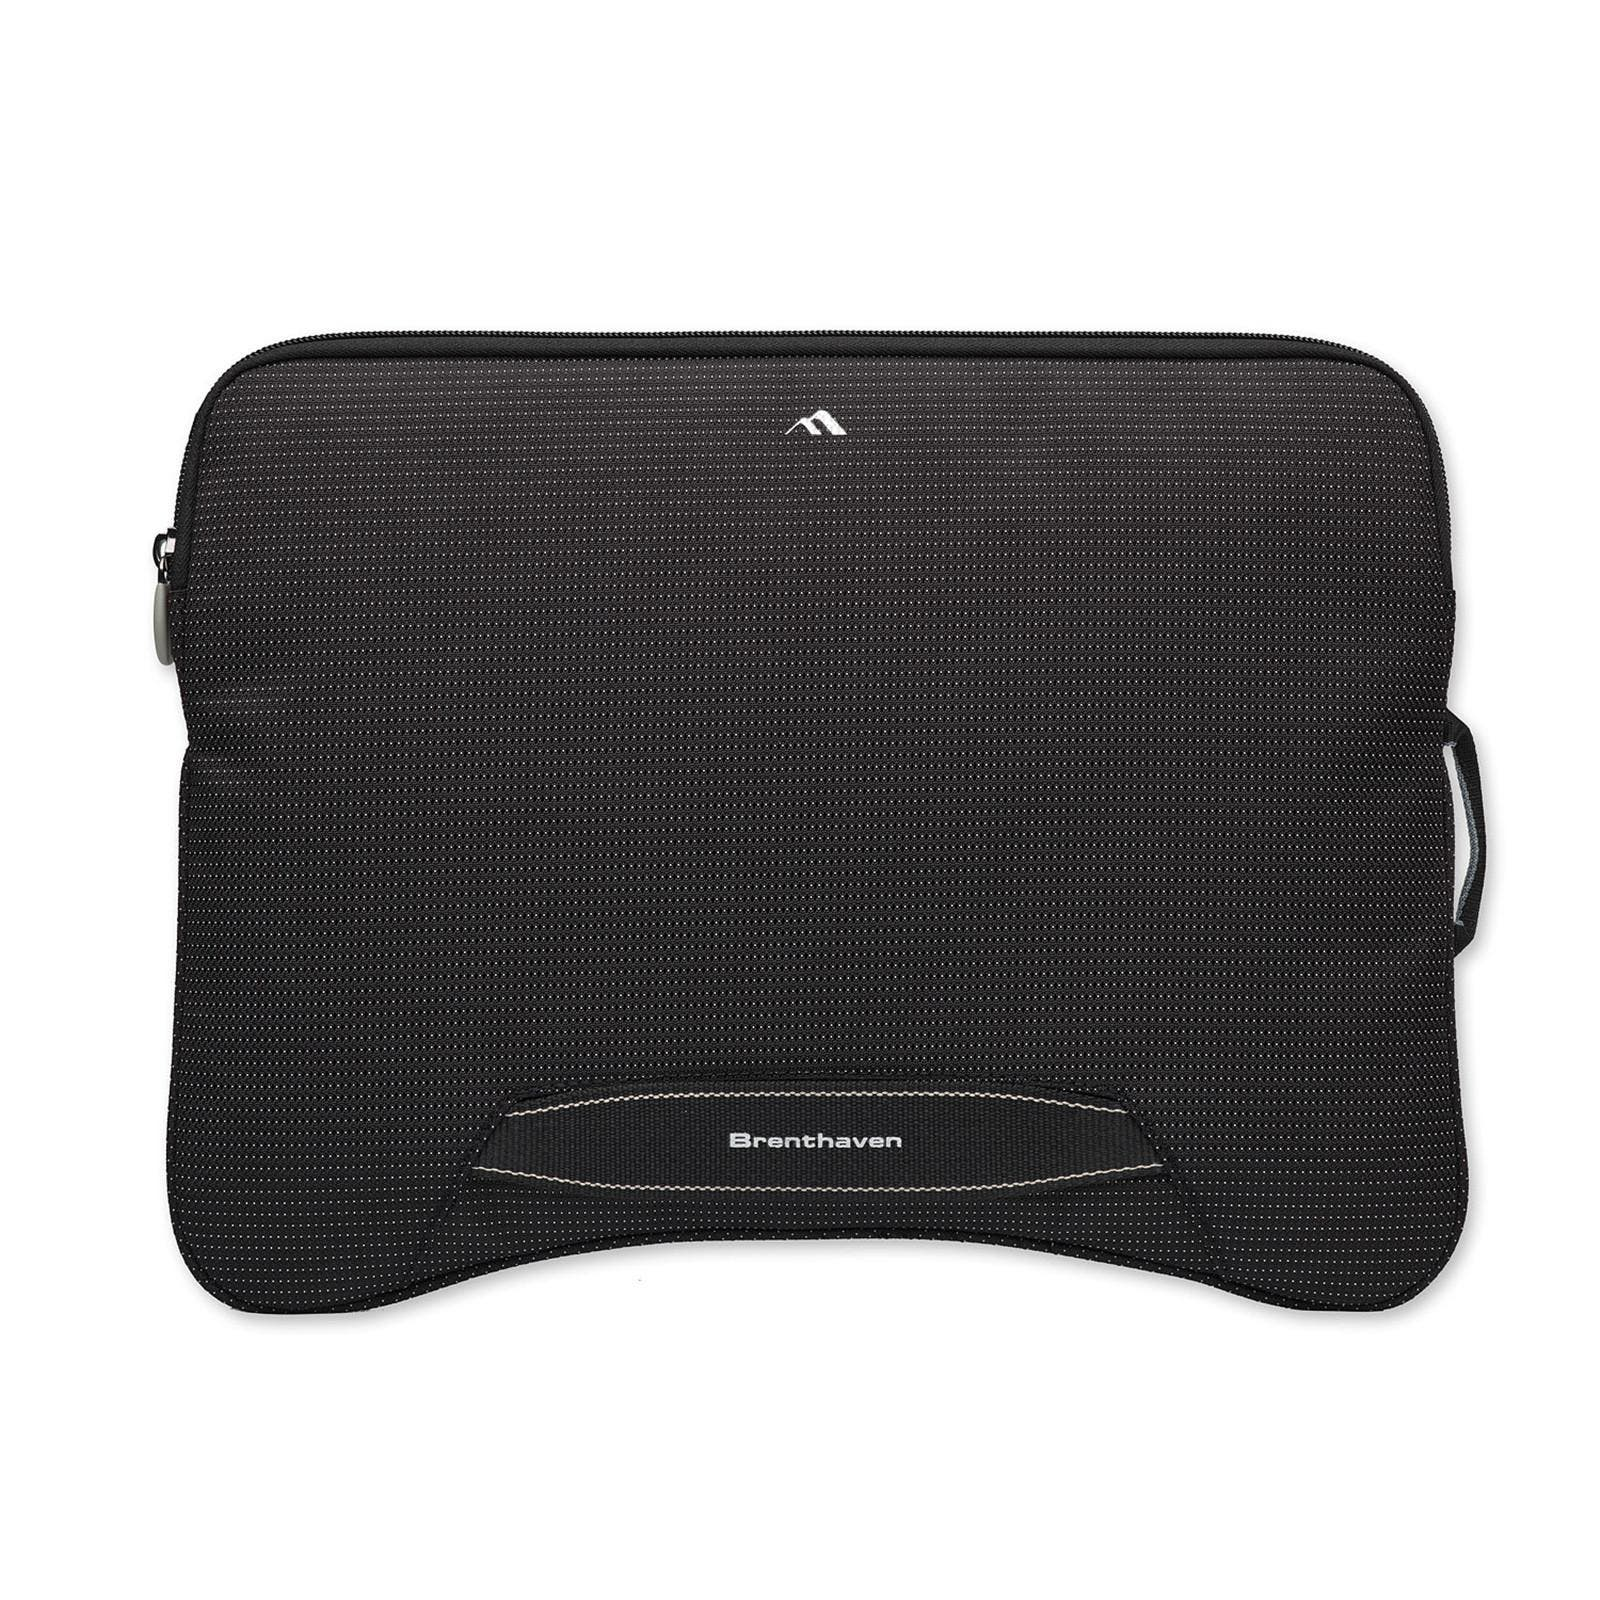 Brenthaven Tred Secure Grip Sleeve with Pouch for 13  Laptops - Black Highlights    * Brenthaven Tred Secure Grip Sleeve with Pouch for 13  Laptops – Black   * Weight: 1.0KGM      1 Year Manufacturer Warranty